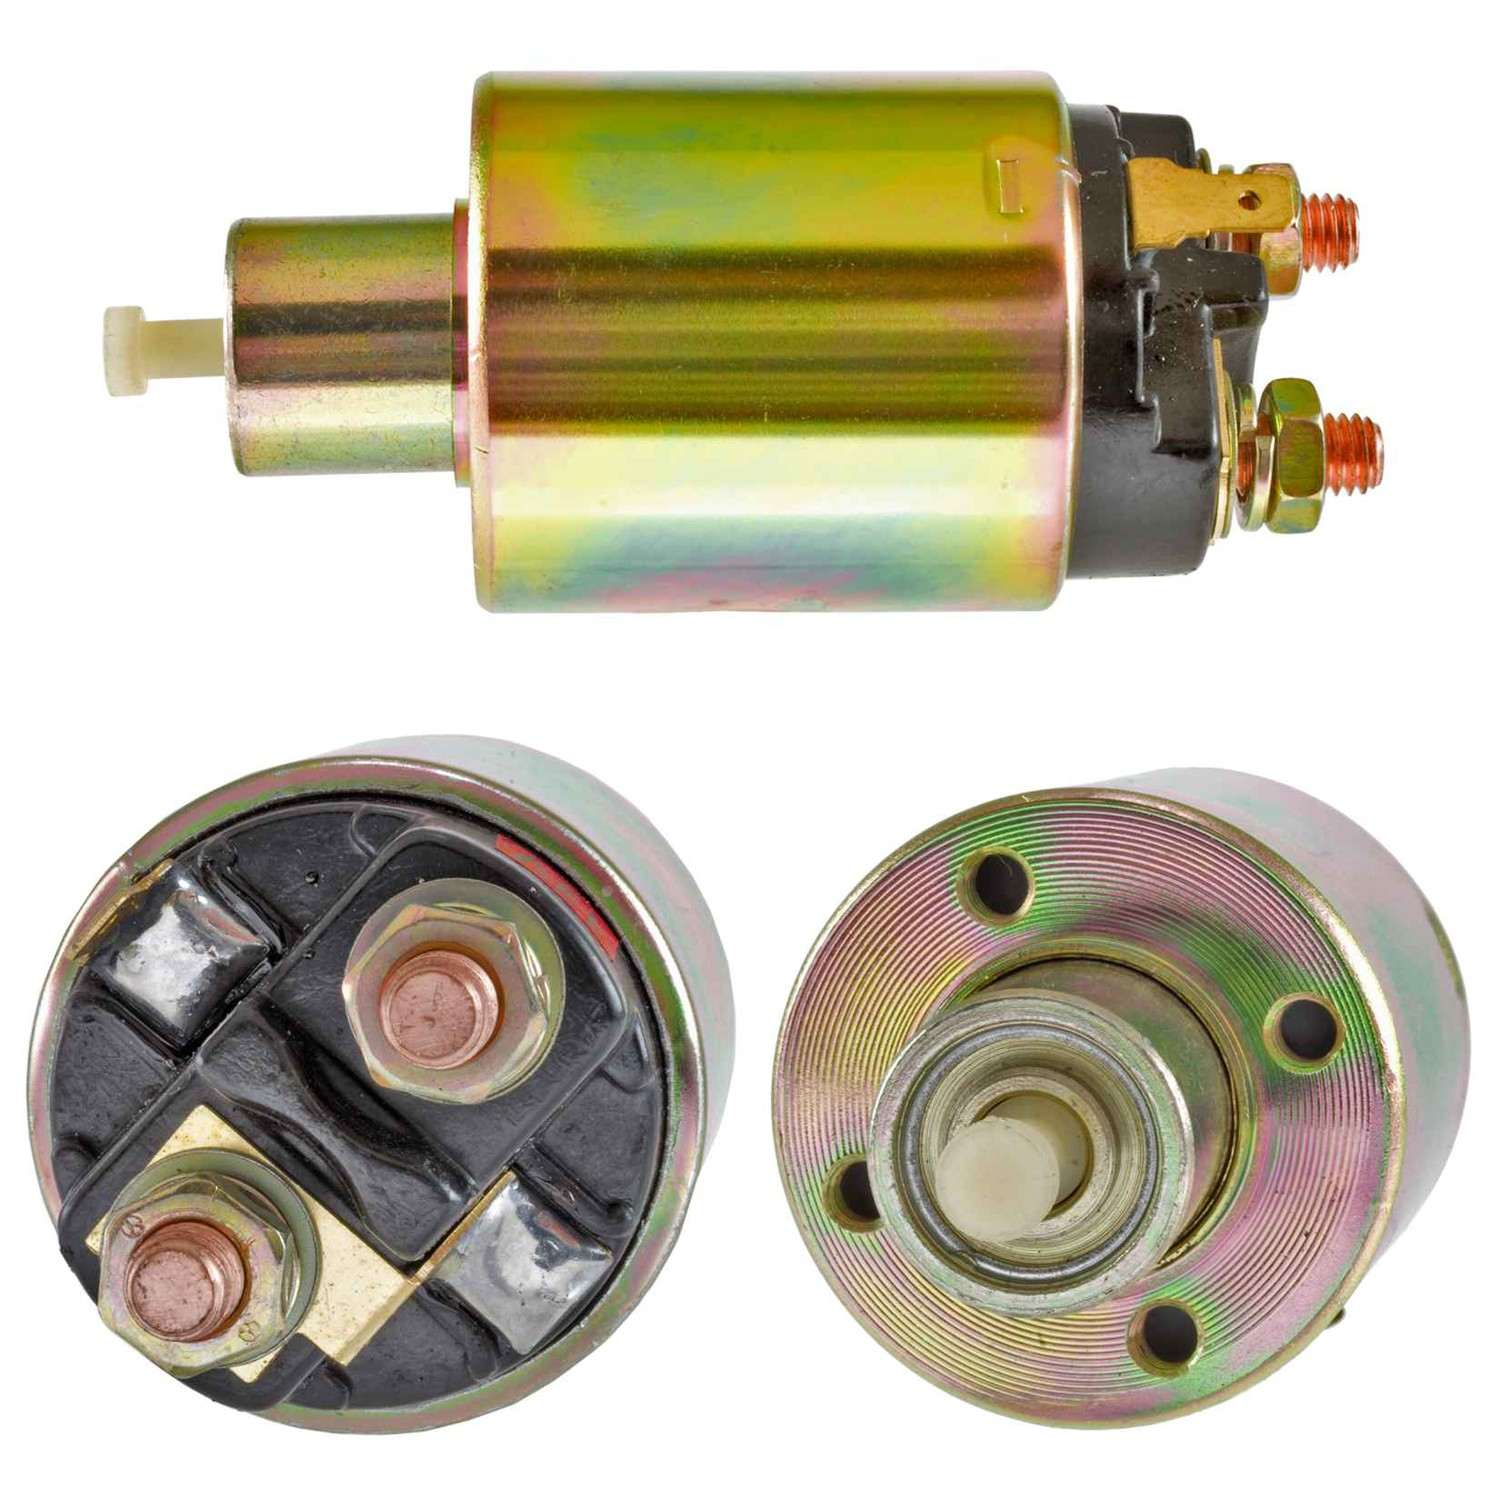 AIRTEX ENG MGMT SYSTEMS(DELETE V24A01R1) - Starter Solenoid - AEM 1M1034